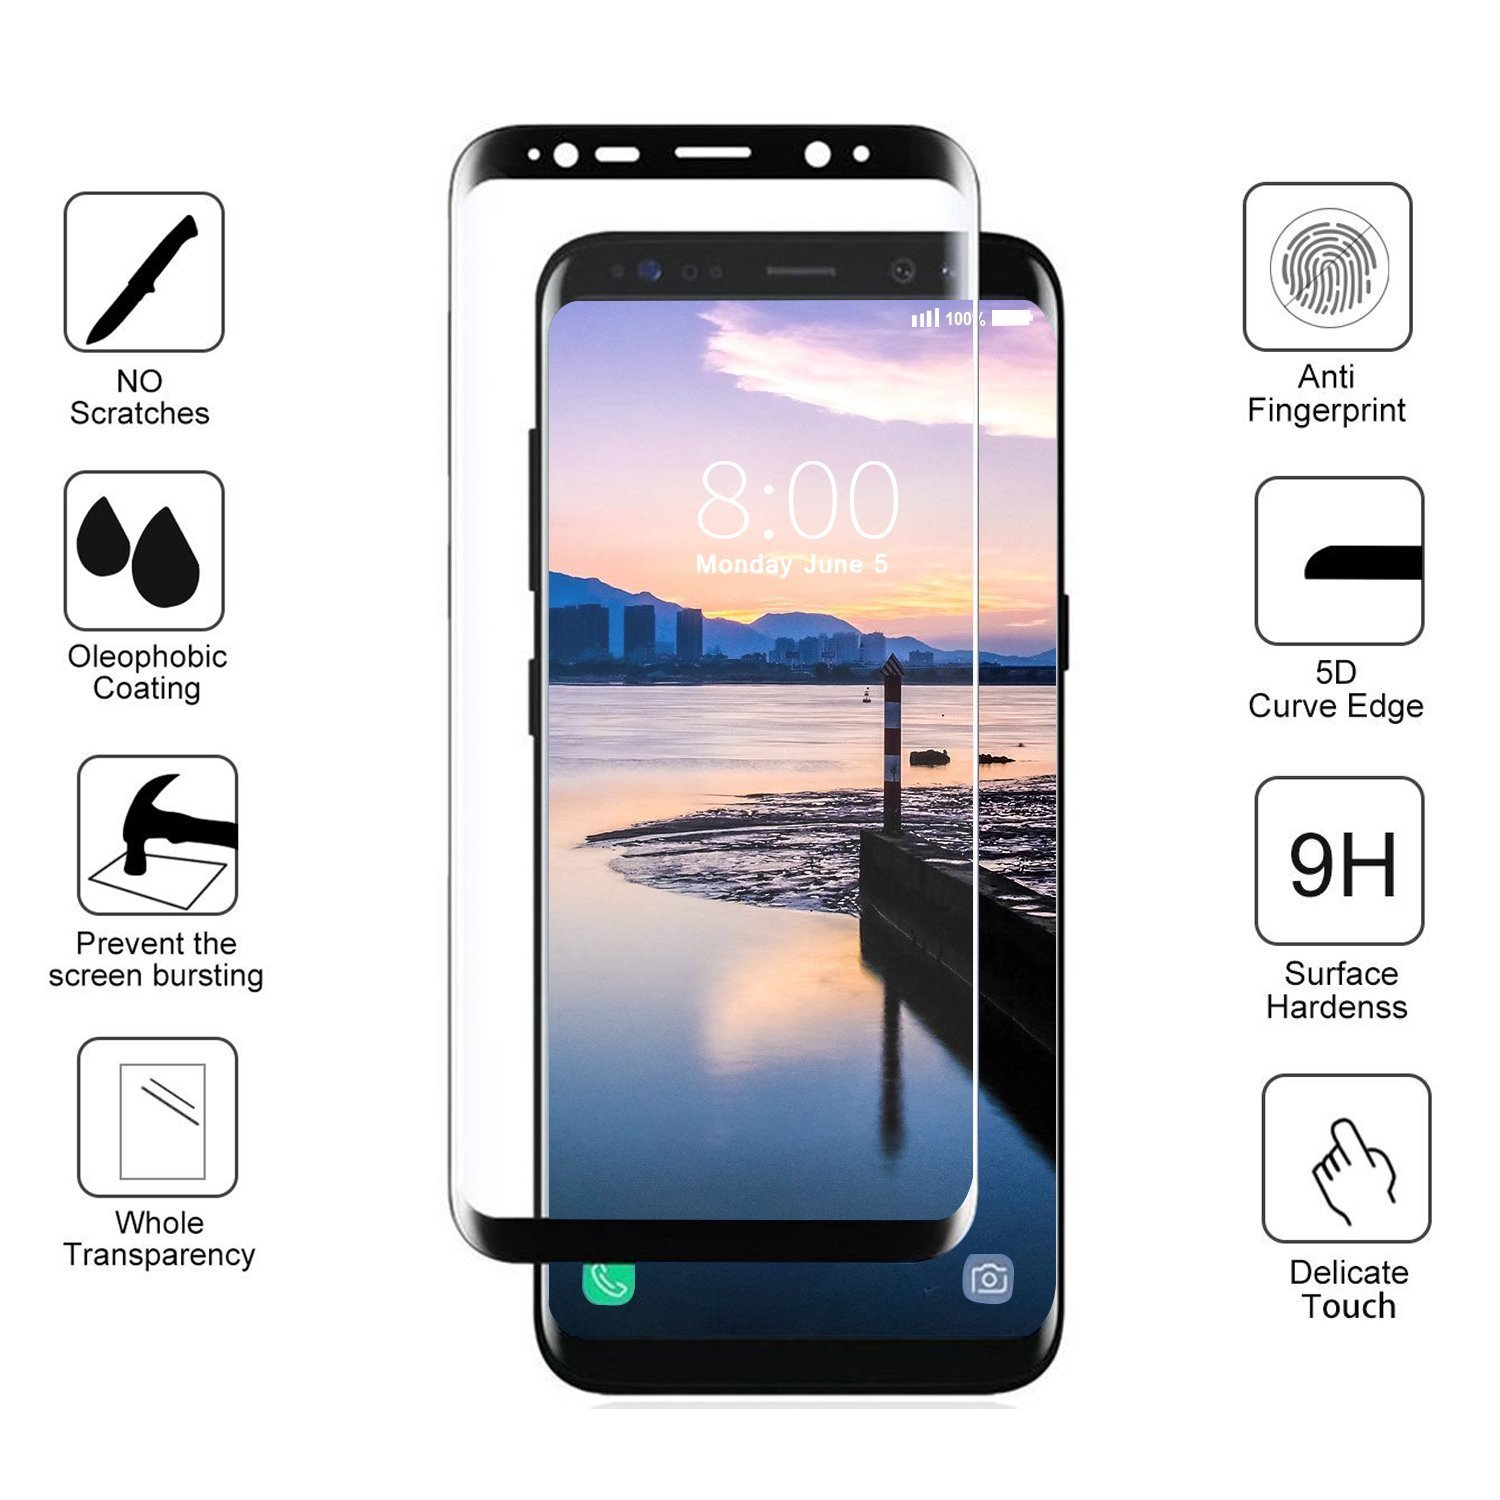 LEDitBe Galaxy S9 Screen Protector, Full Screen Tempered Glass Screen Protector Film, Edge to Edge Protection Screen Cover Saver Guard for 3D 9H Hardness Samsung Galaxy S9 Black by LEDitBe (Image #2)